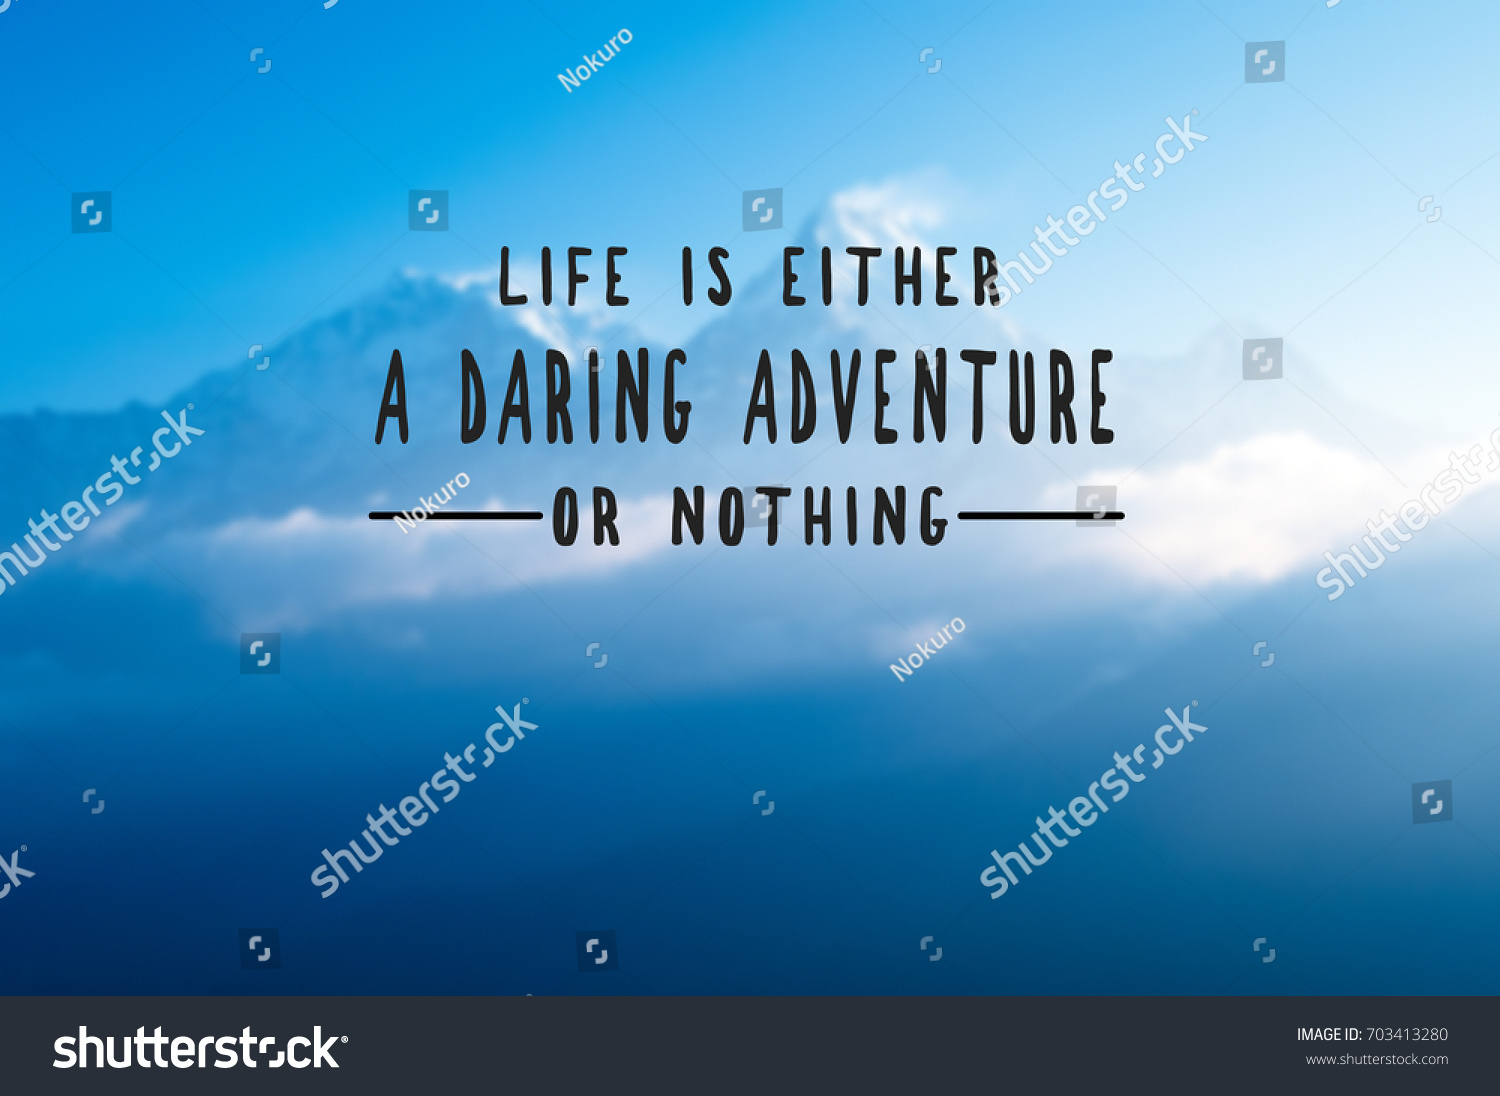 Life Inspirational Quotes Inspirational Quotes Life Either Daring Adventure Stock Photo